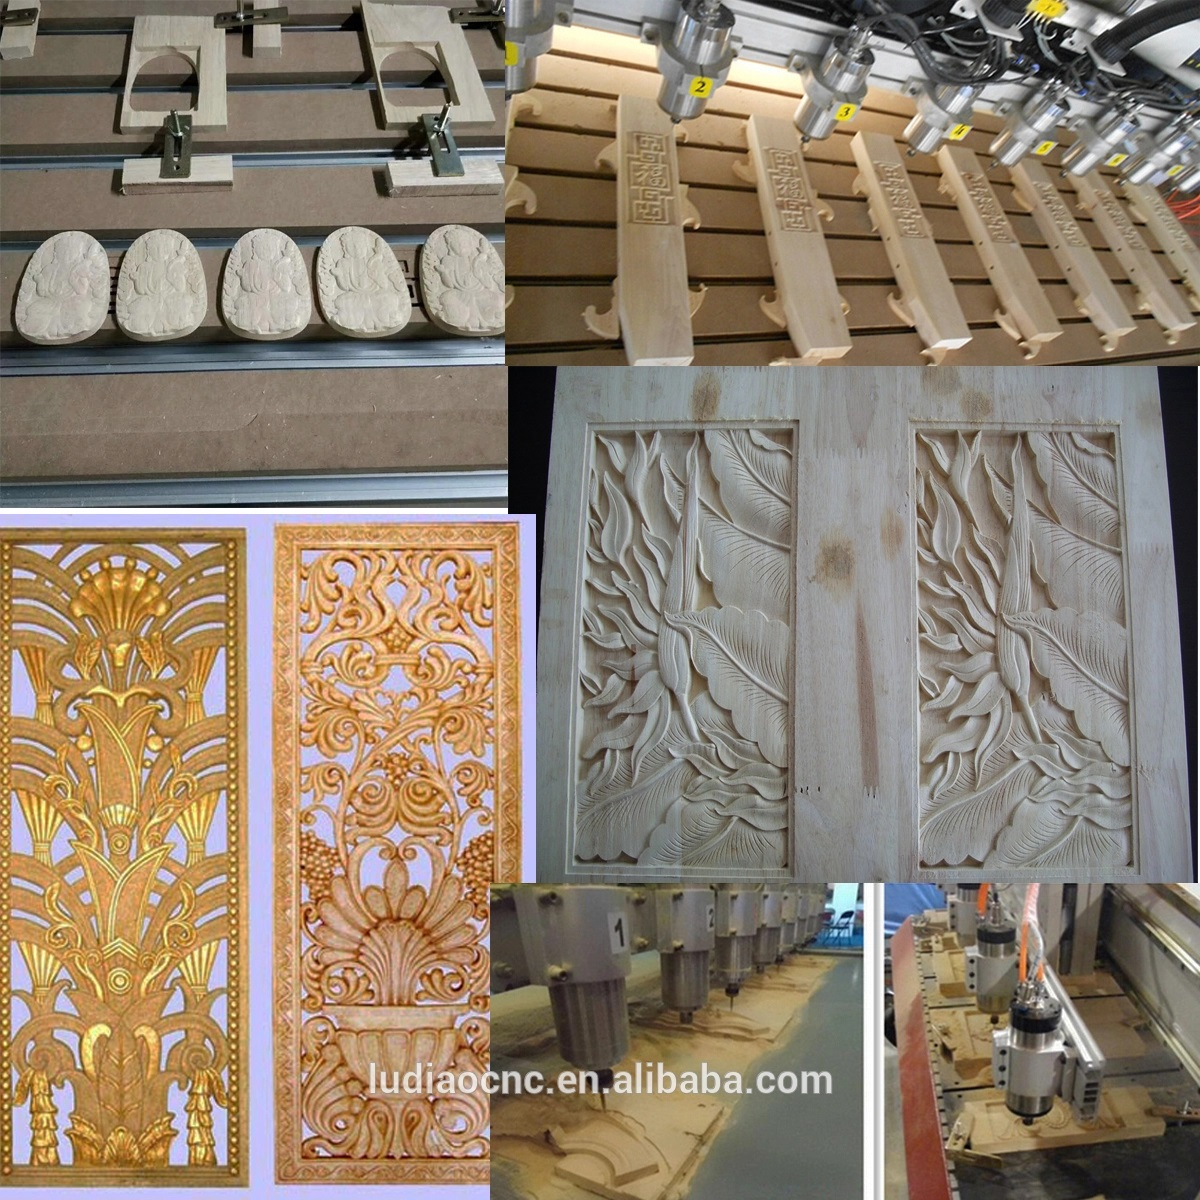 Ludiao Latest 3 axis cnc router manufacturers for woodworking-5